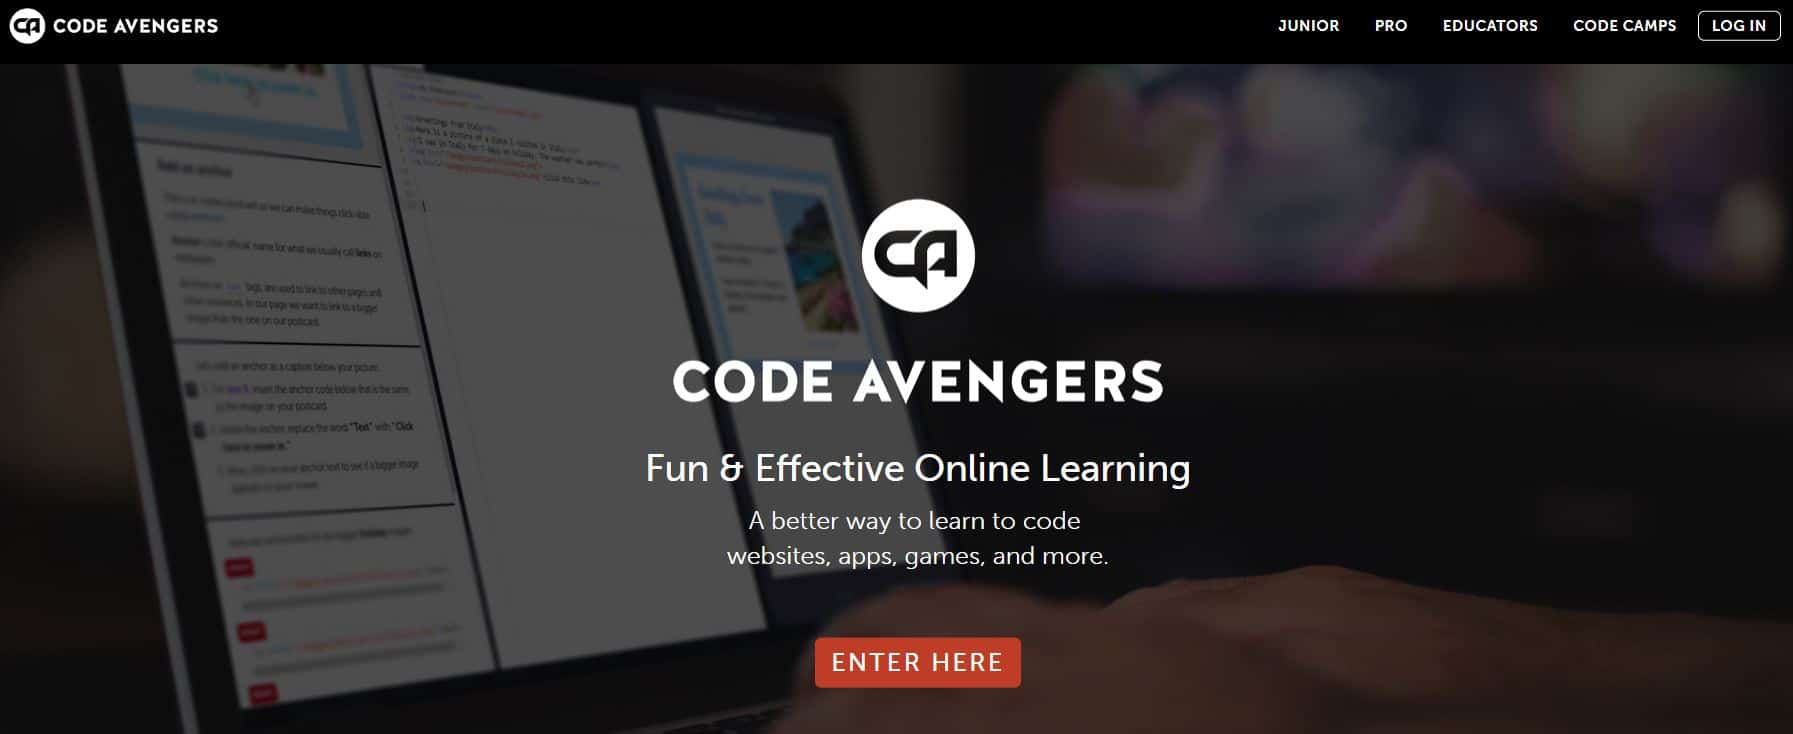 Learn to Code with Code Avengers